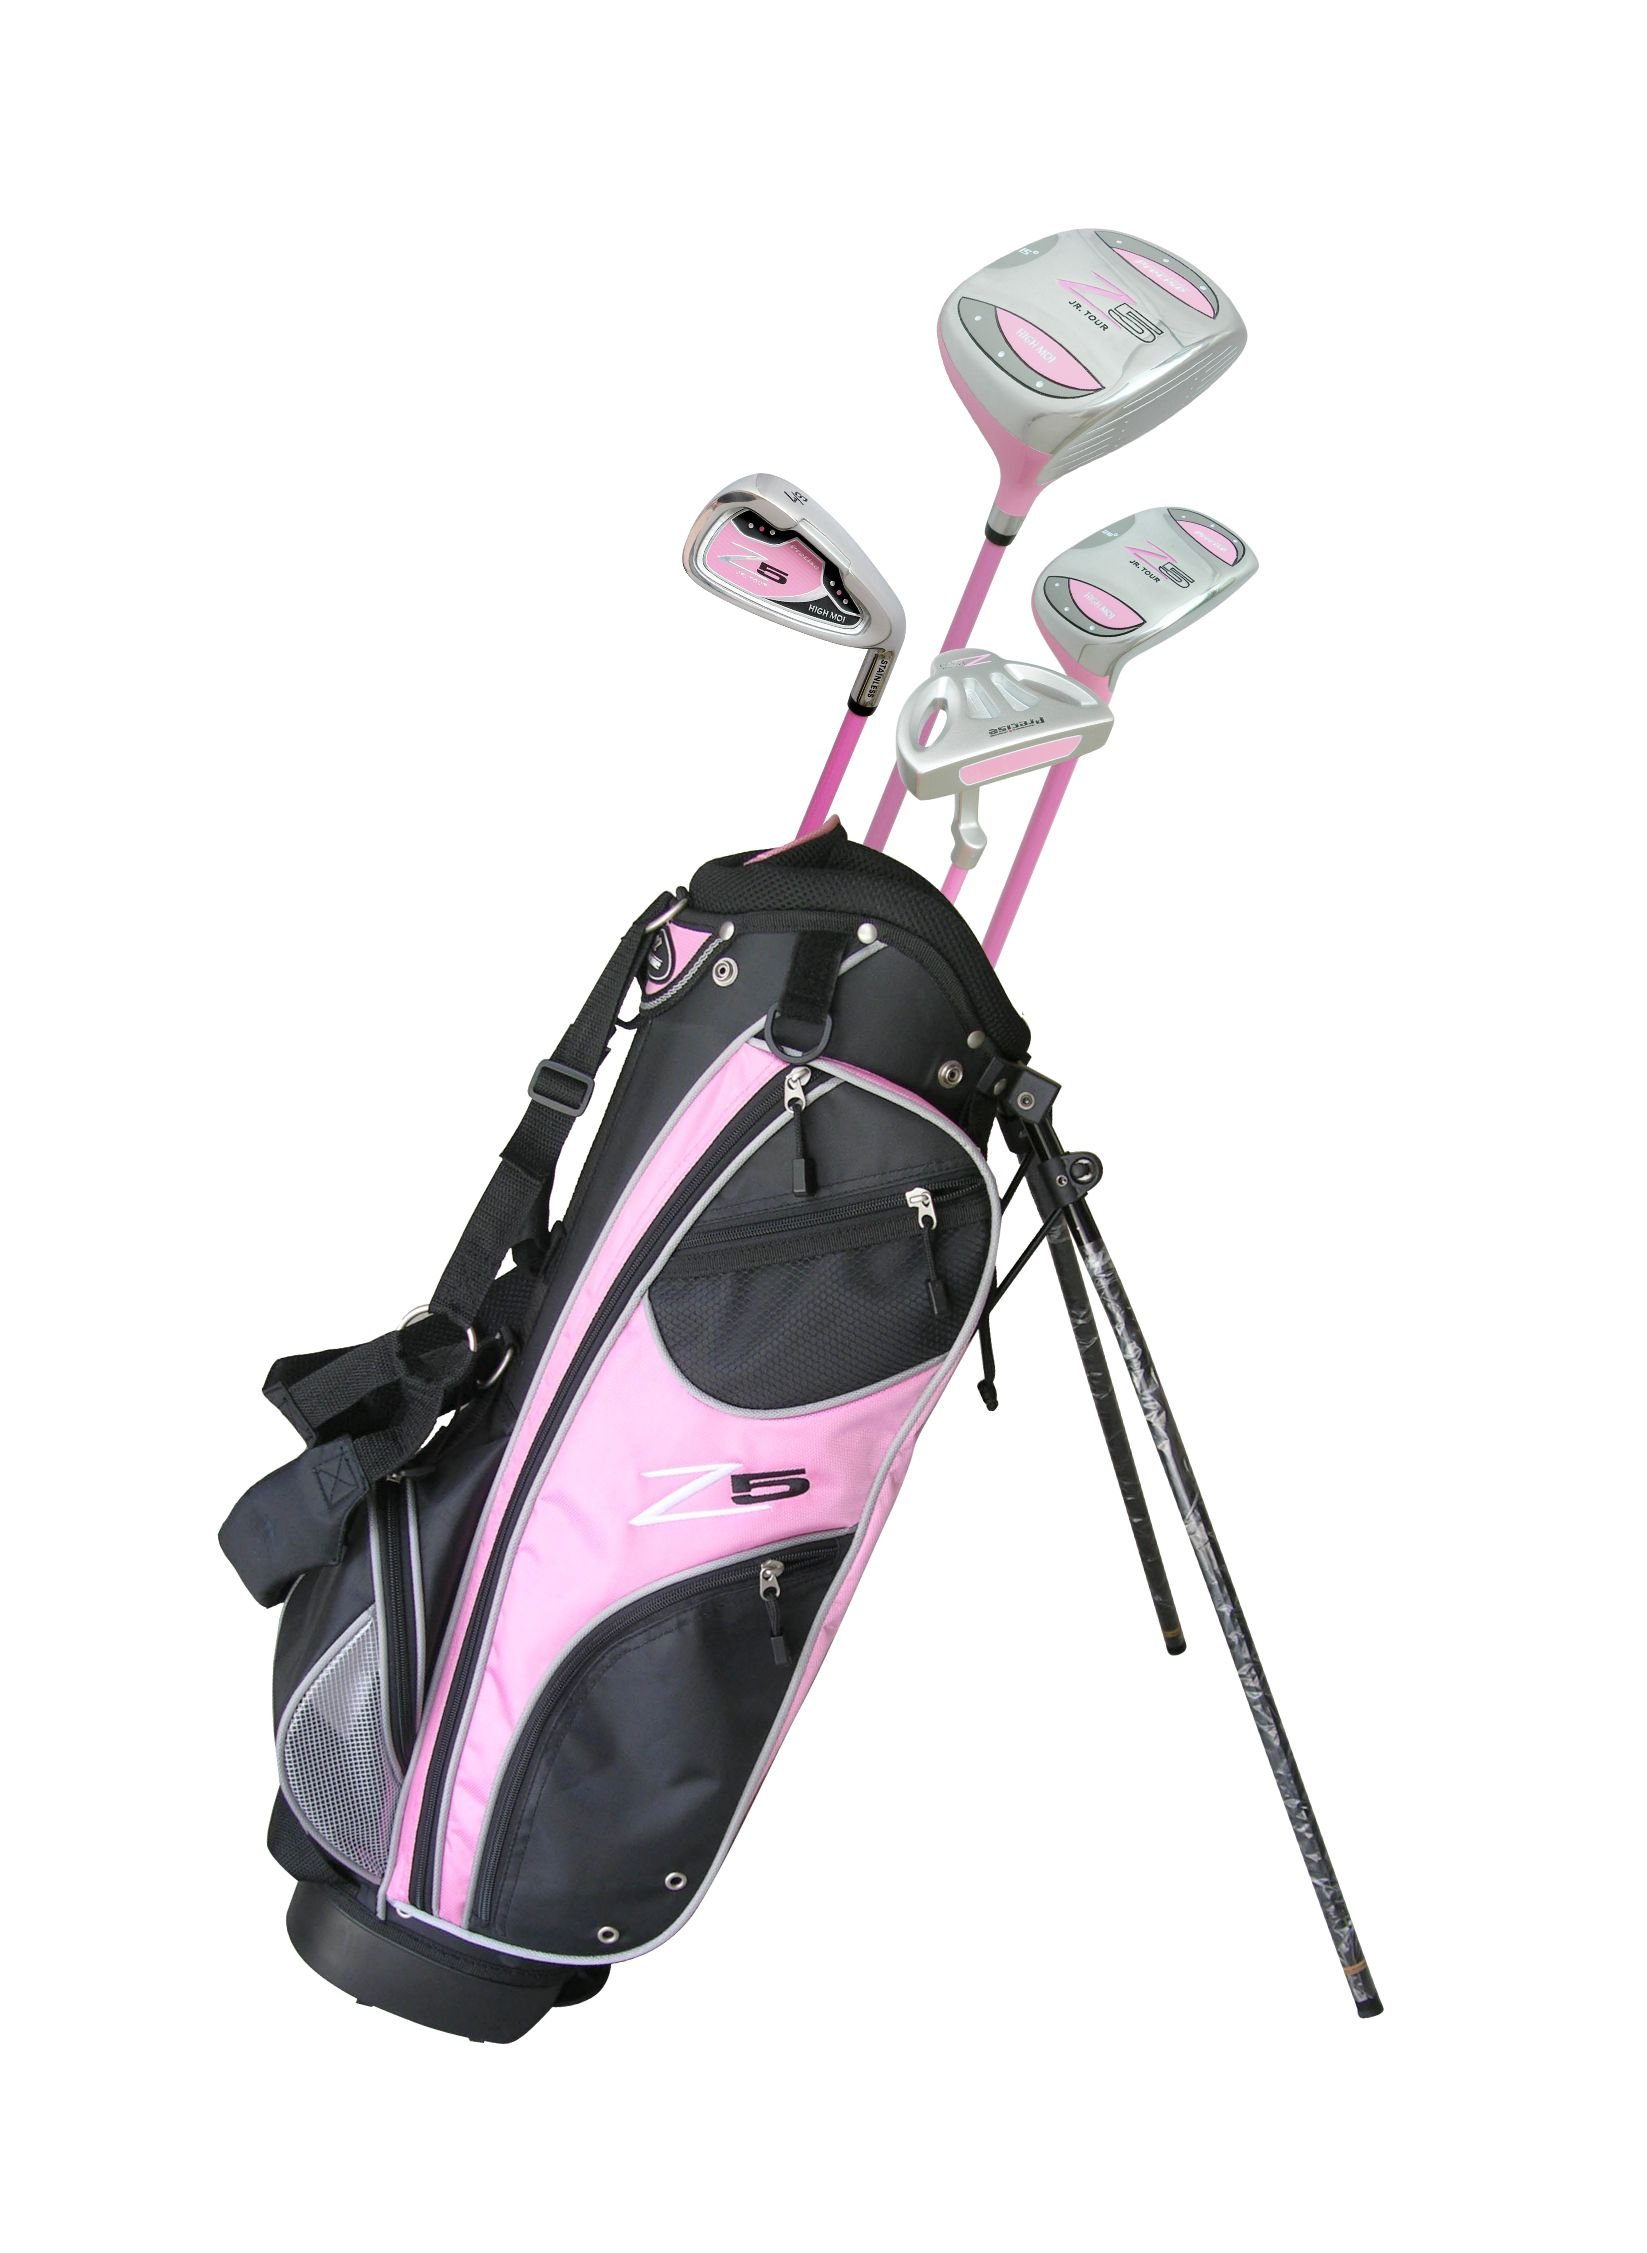 Top Performance Left Handed Junior Golf Club Set for Ages 3 to 5 Girls (Pink, Left Handed) - Height 3'8'' Inches to 4'4'' Inches